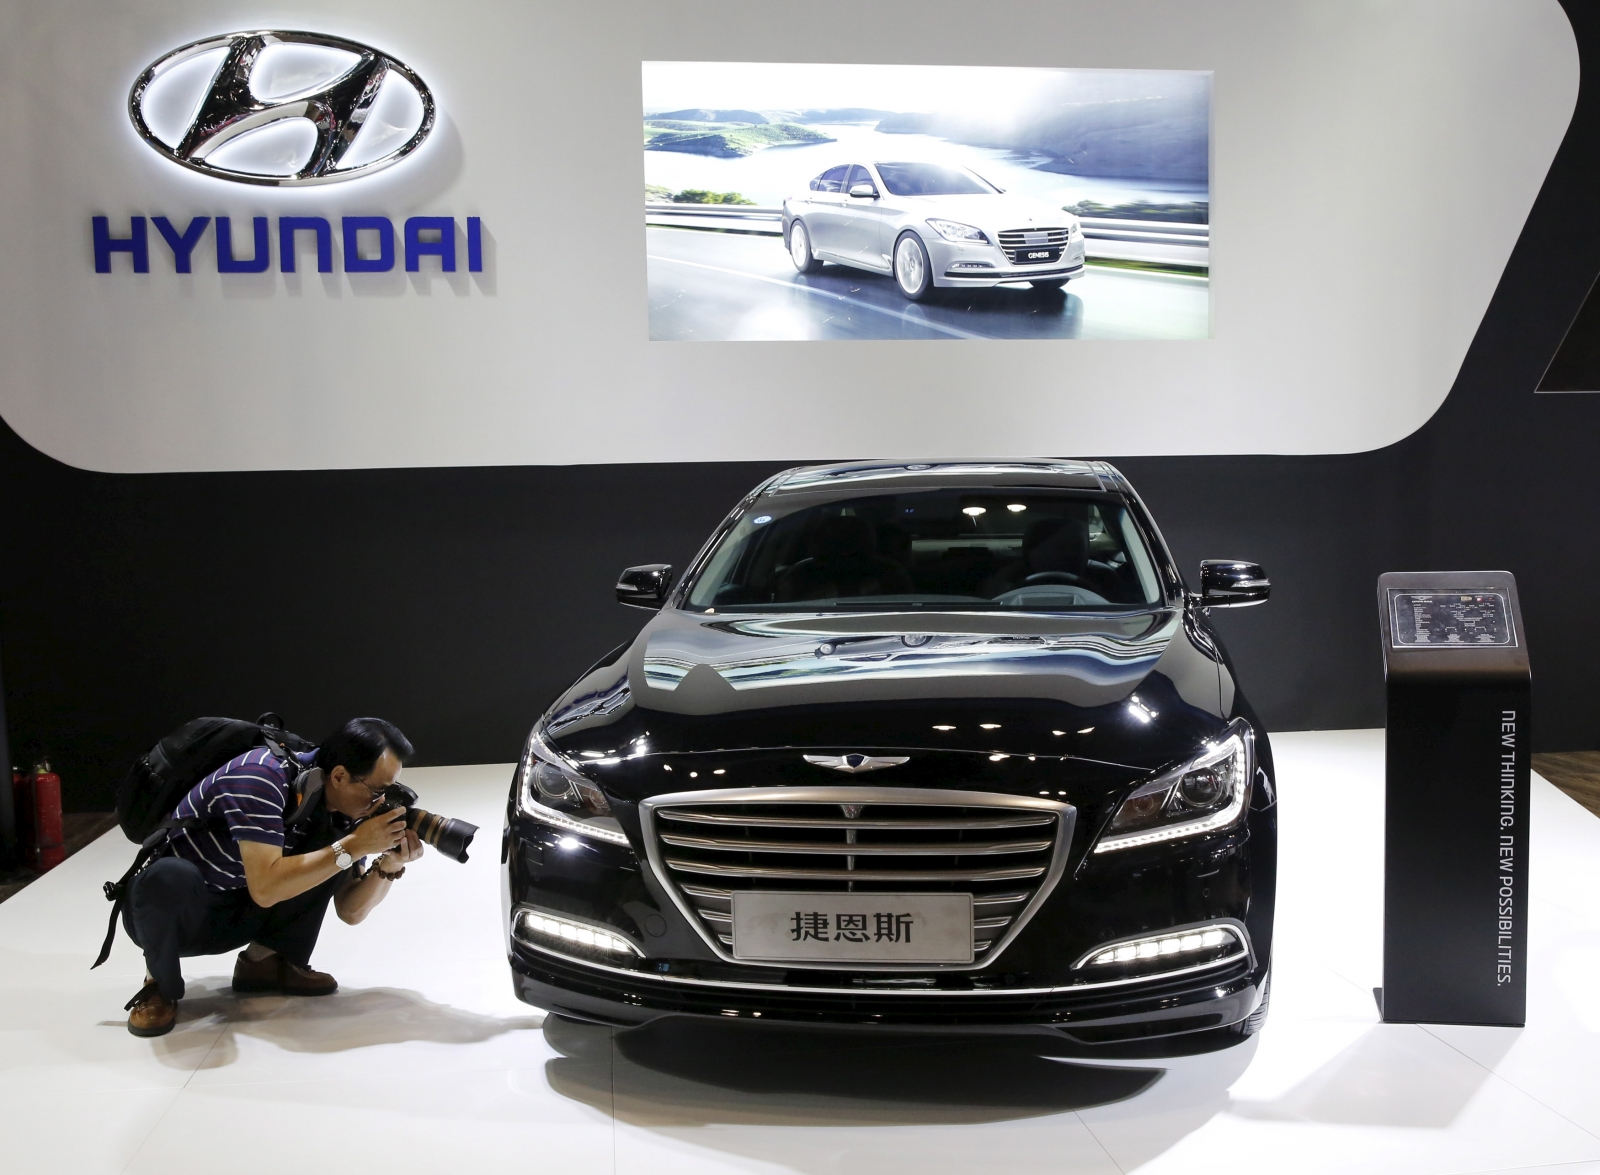 Whistle blower triggers recall of 240 000 hyundai and kia cars for Hyundai kia motor finance